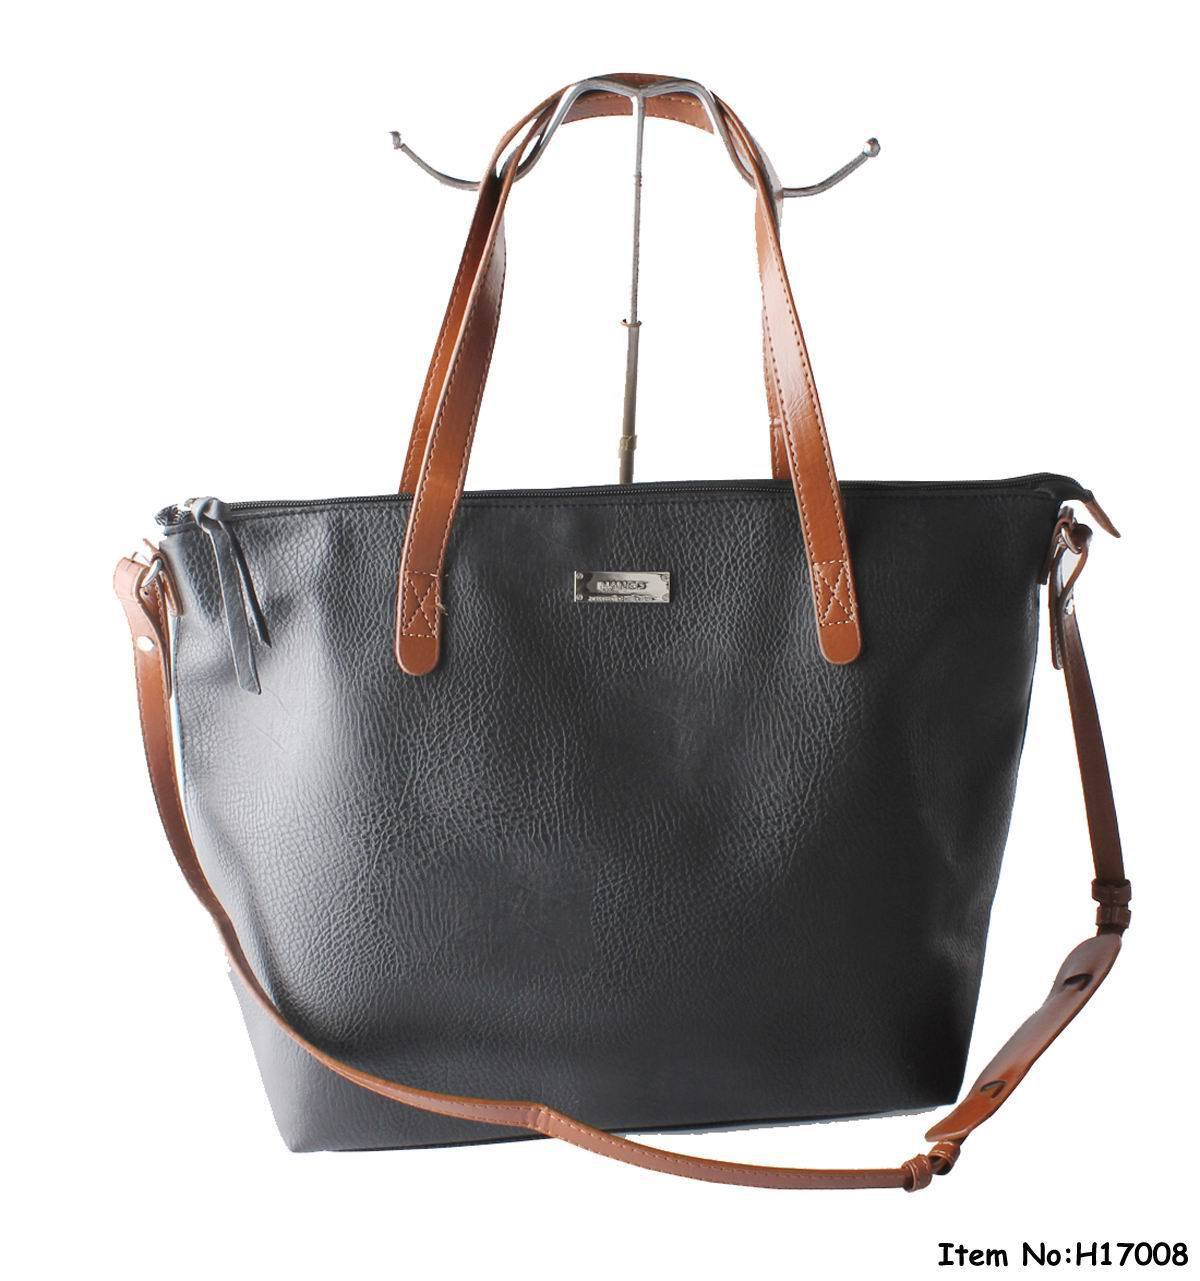 Fashion Accessories Women Tote Bags (H17008)